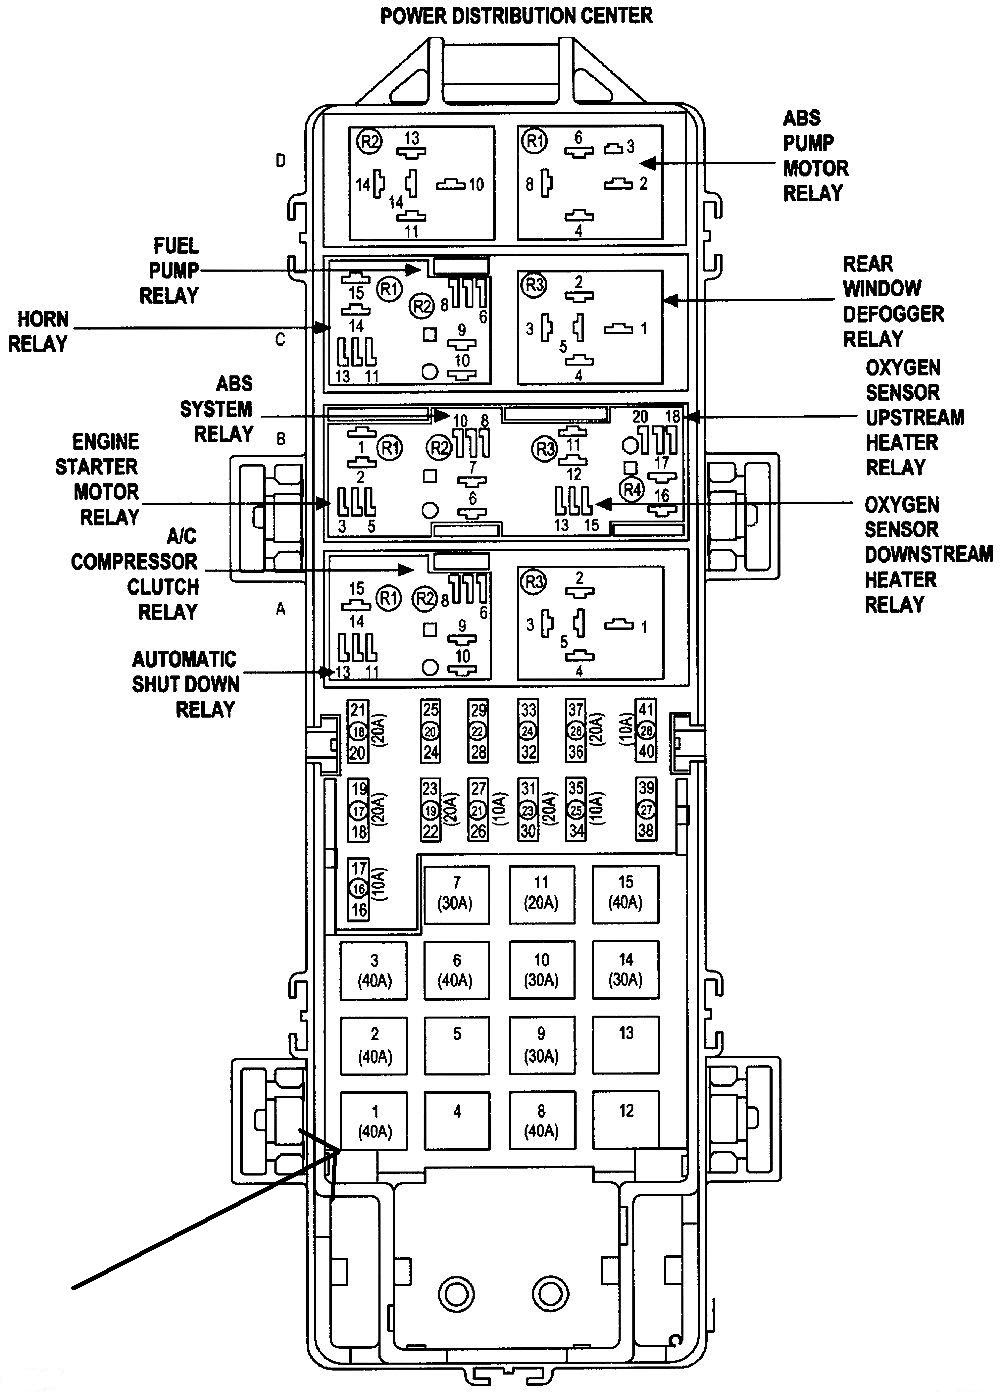 [DIAGRAM] 2002 Jeep Cherokee Blower Motor Wiring Diagram